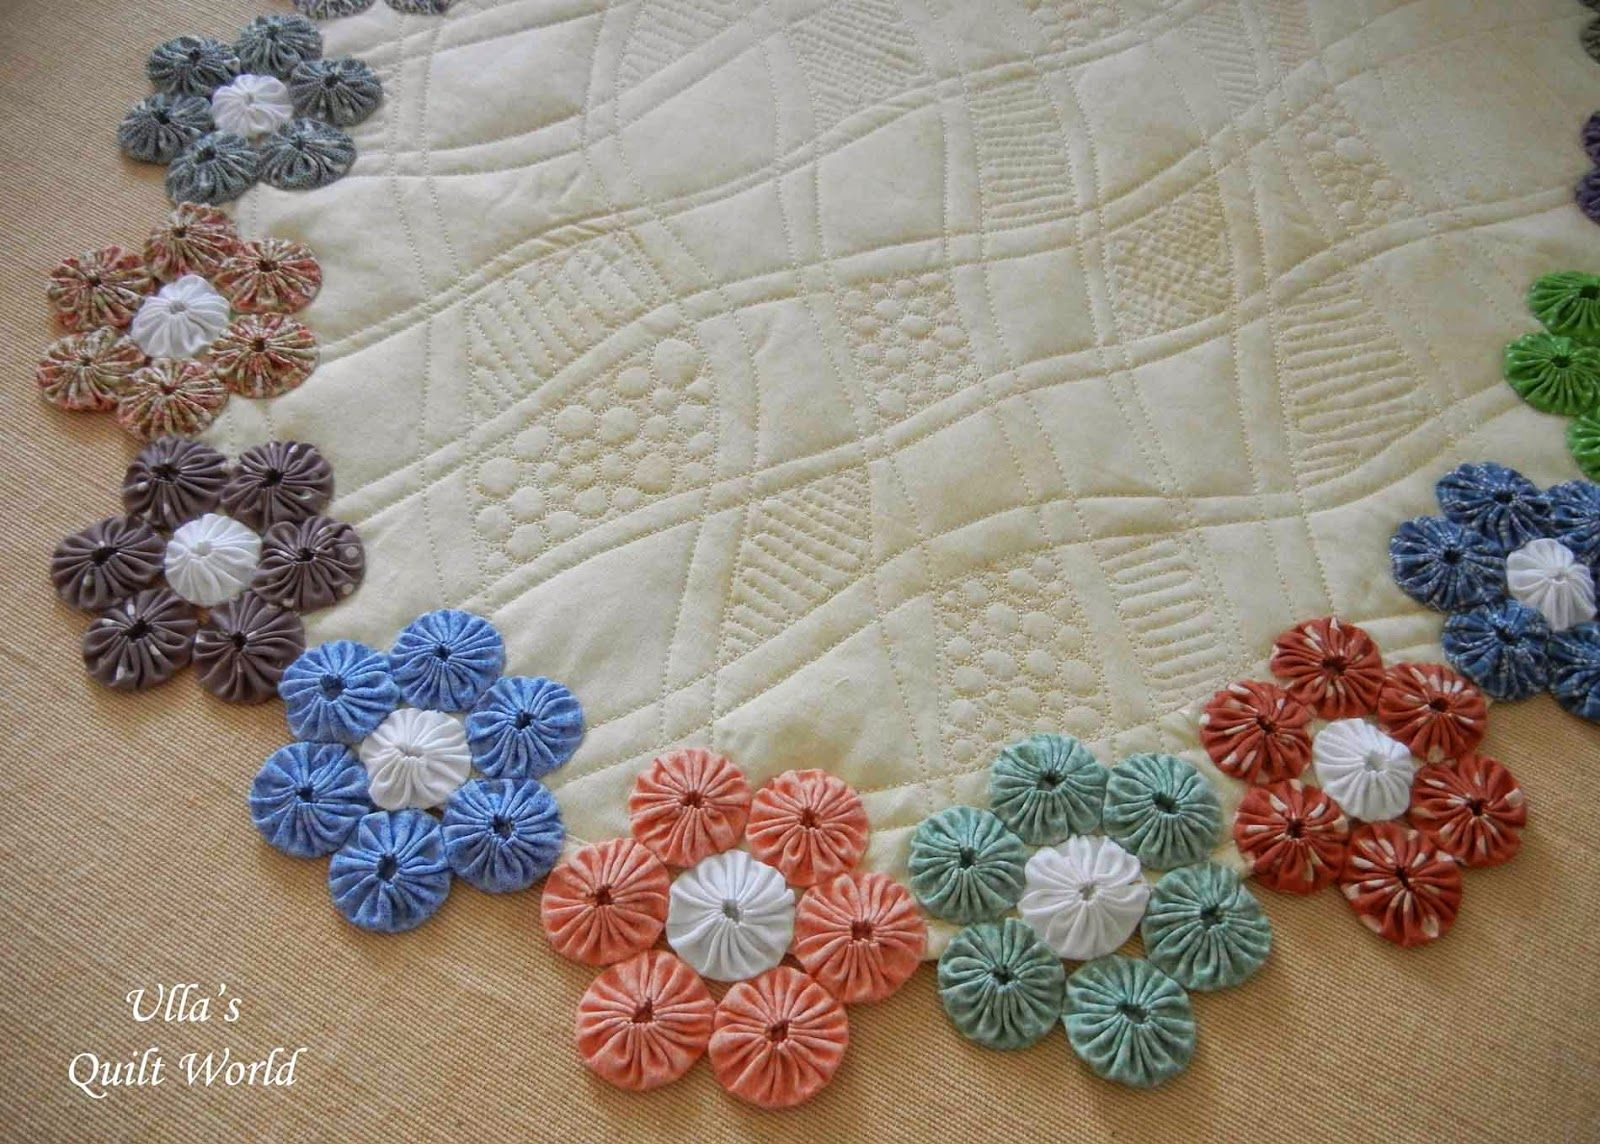 Ulla's Quilt World: YoYo table cloth quilt